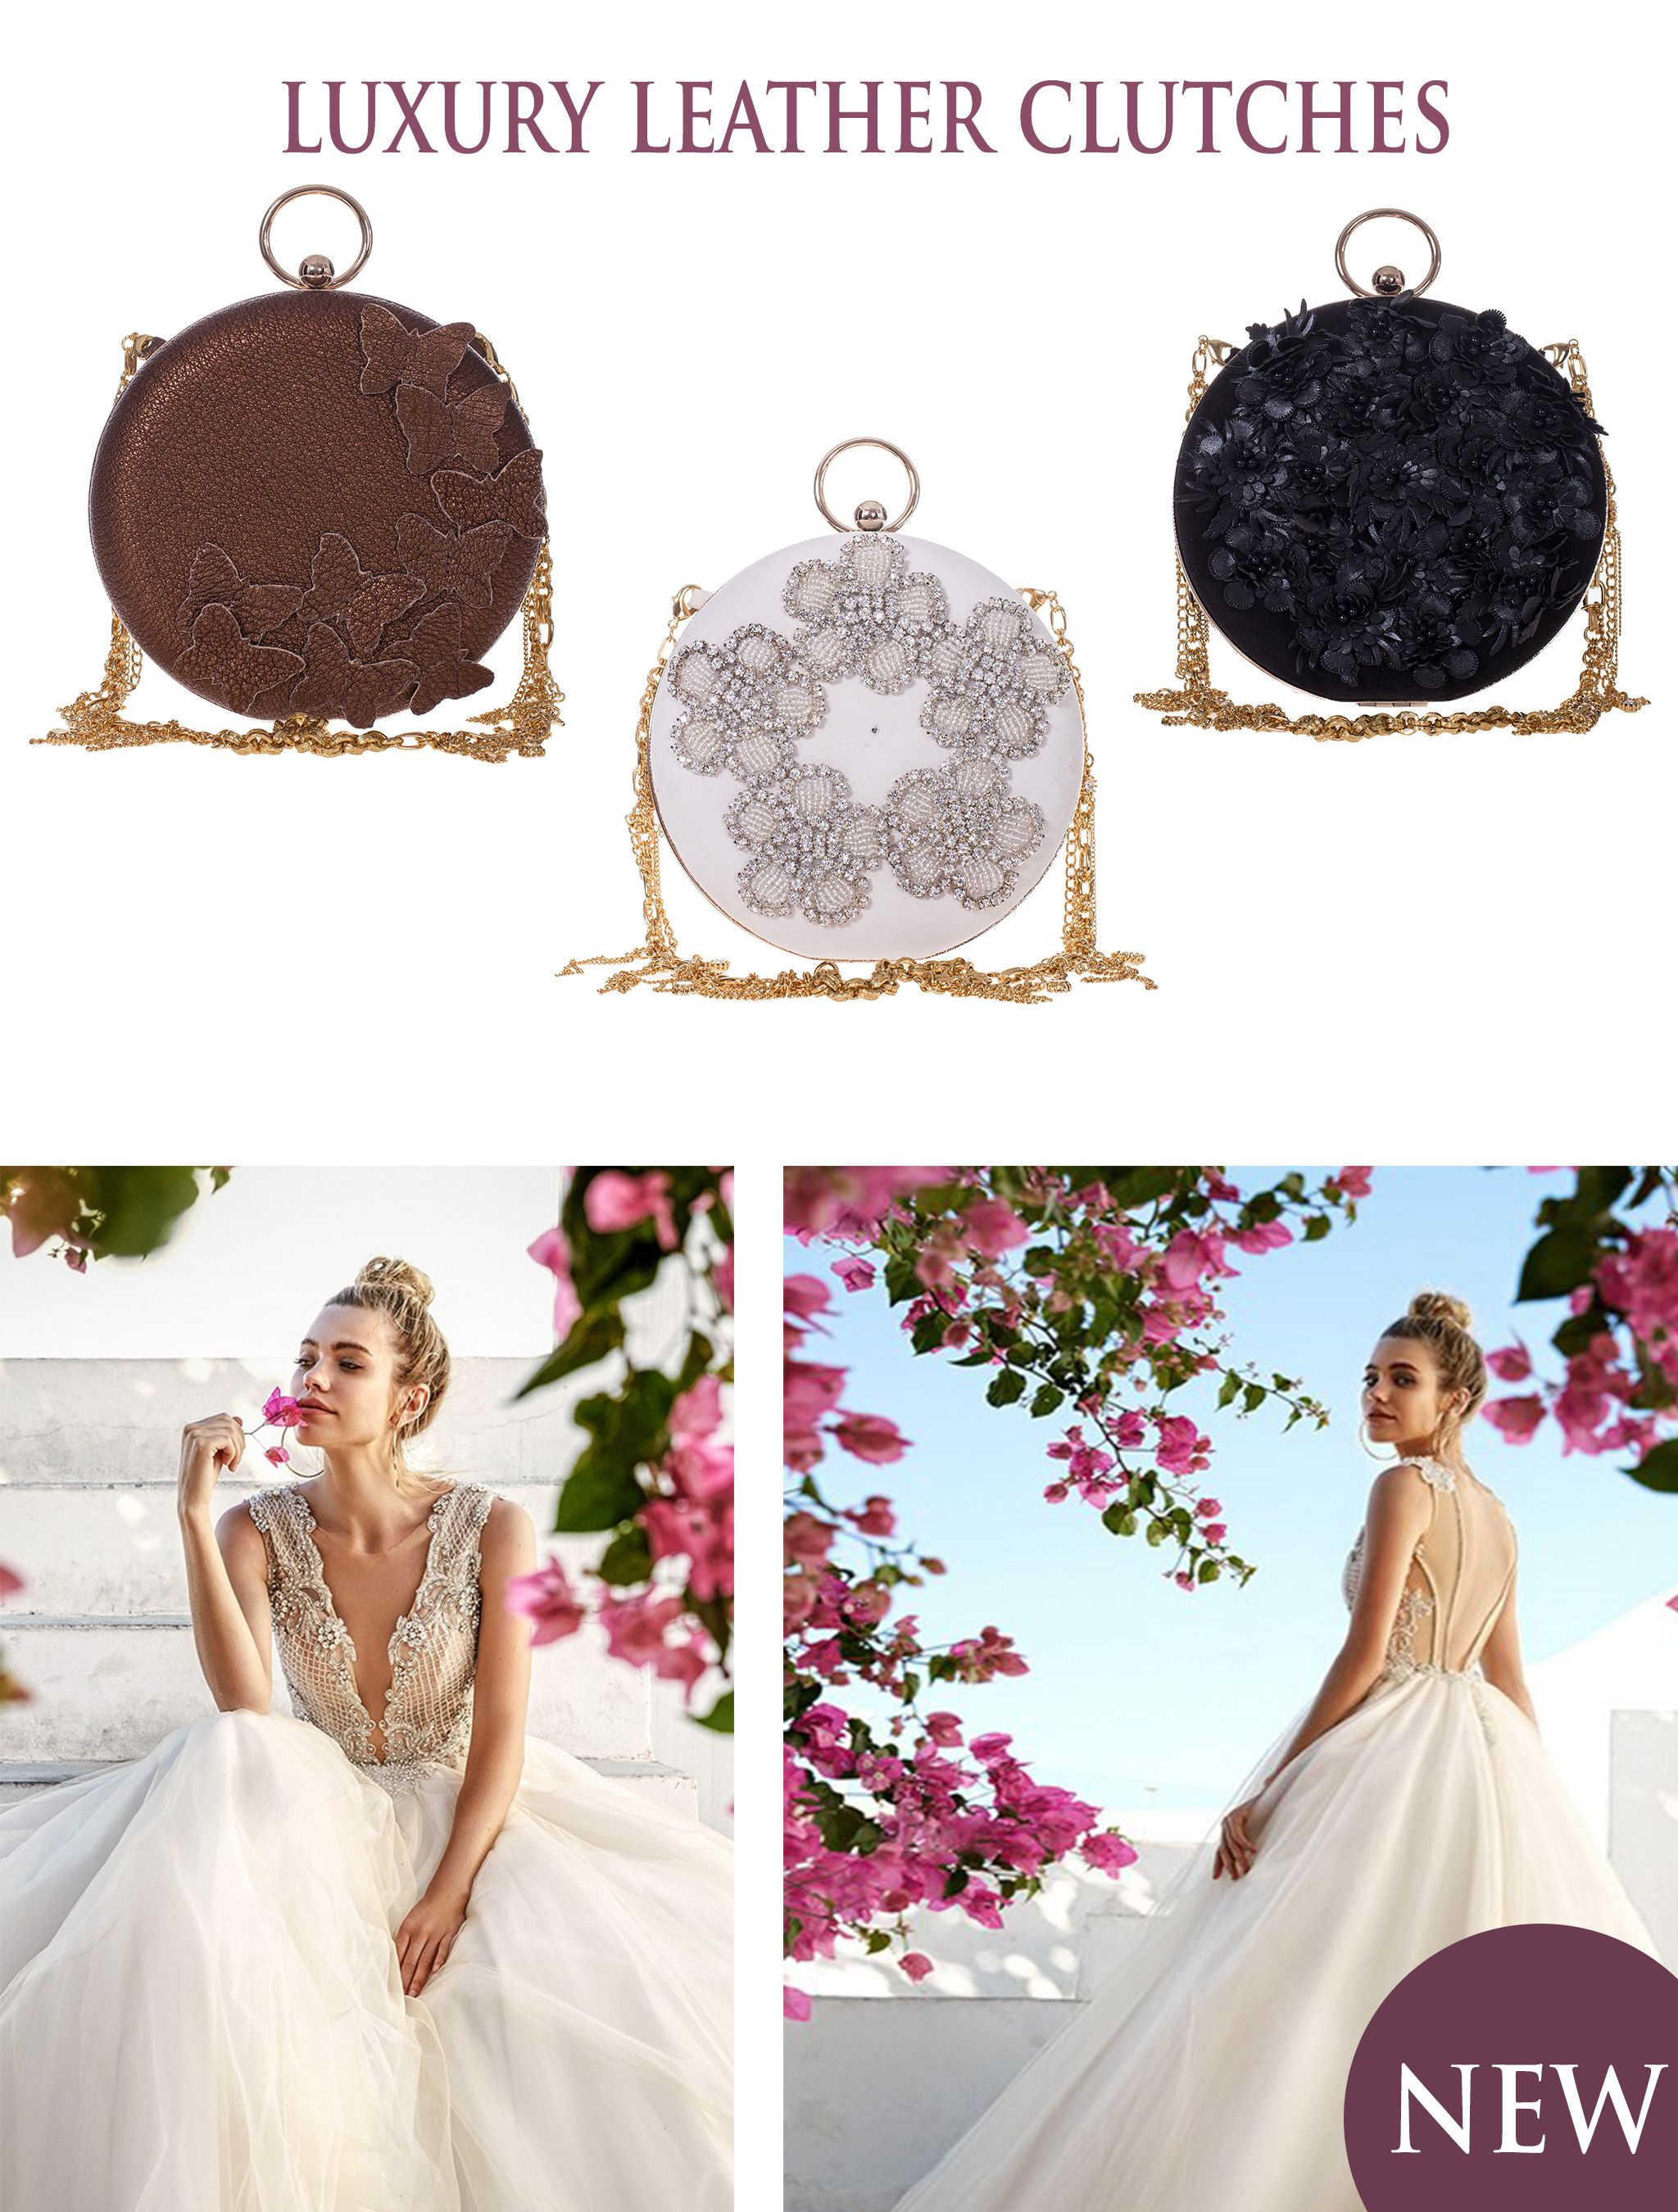 Wild Inga's new collection of elegant leather clutches inspires a certain kind of charm, making you think of dreamy, feminine outfits worn in places where reality meets the fairy tale like beauty of nature. Decorated with butterfly details, black leather flowers or floral silvery shapes, these refined luxury bags are a must have this summer.